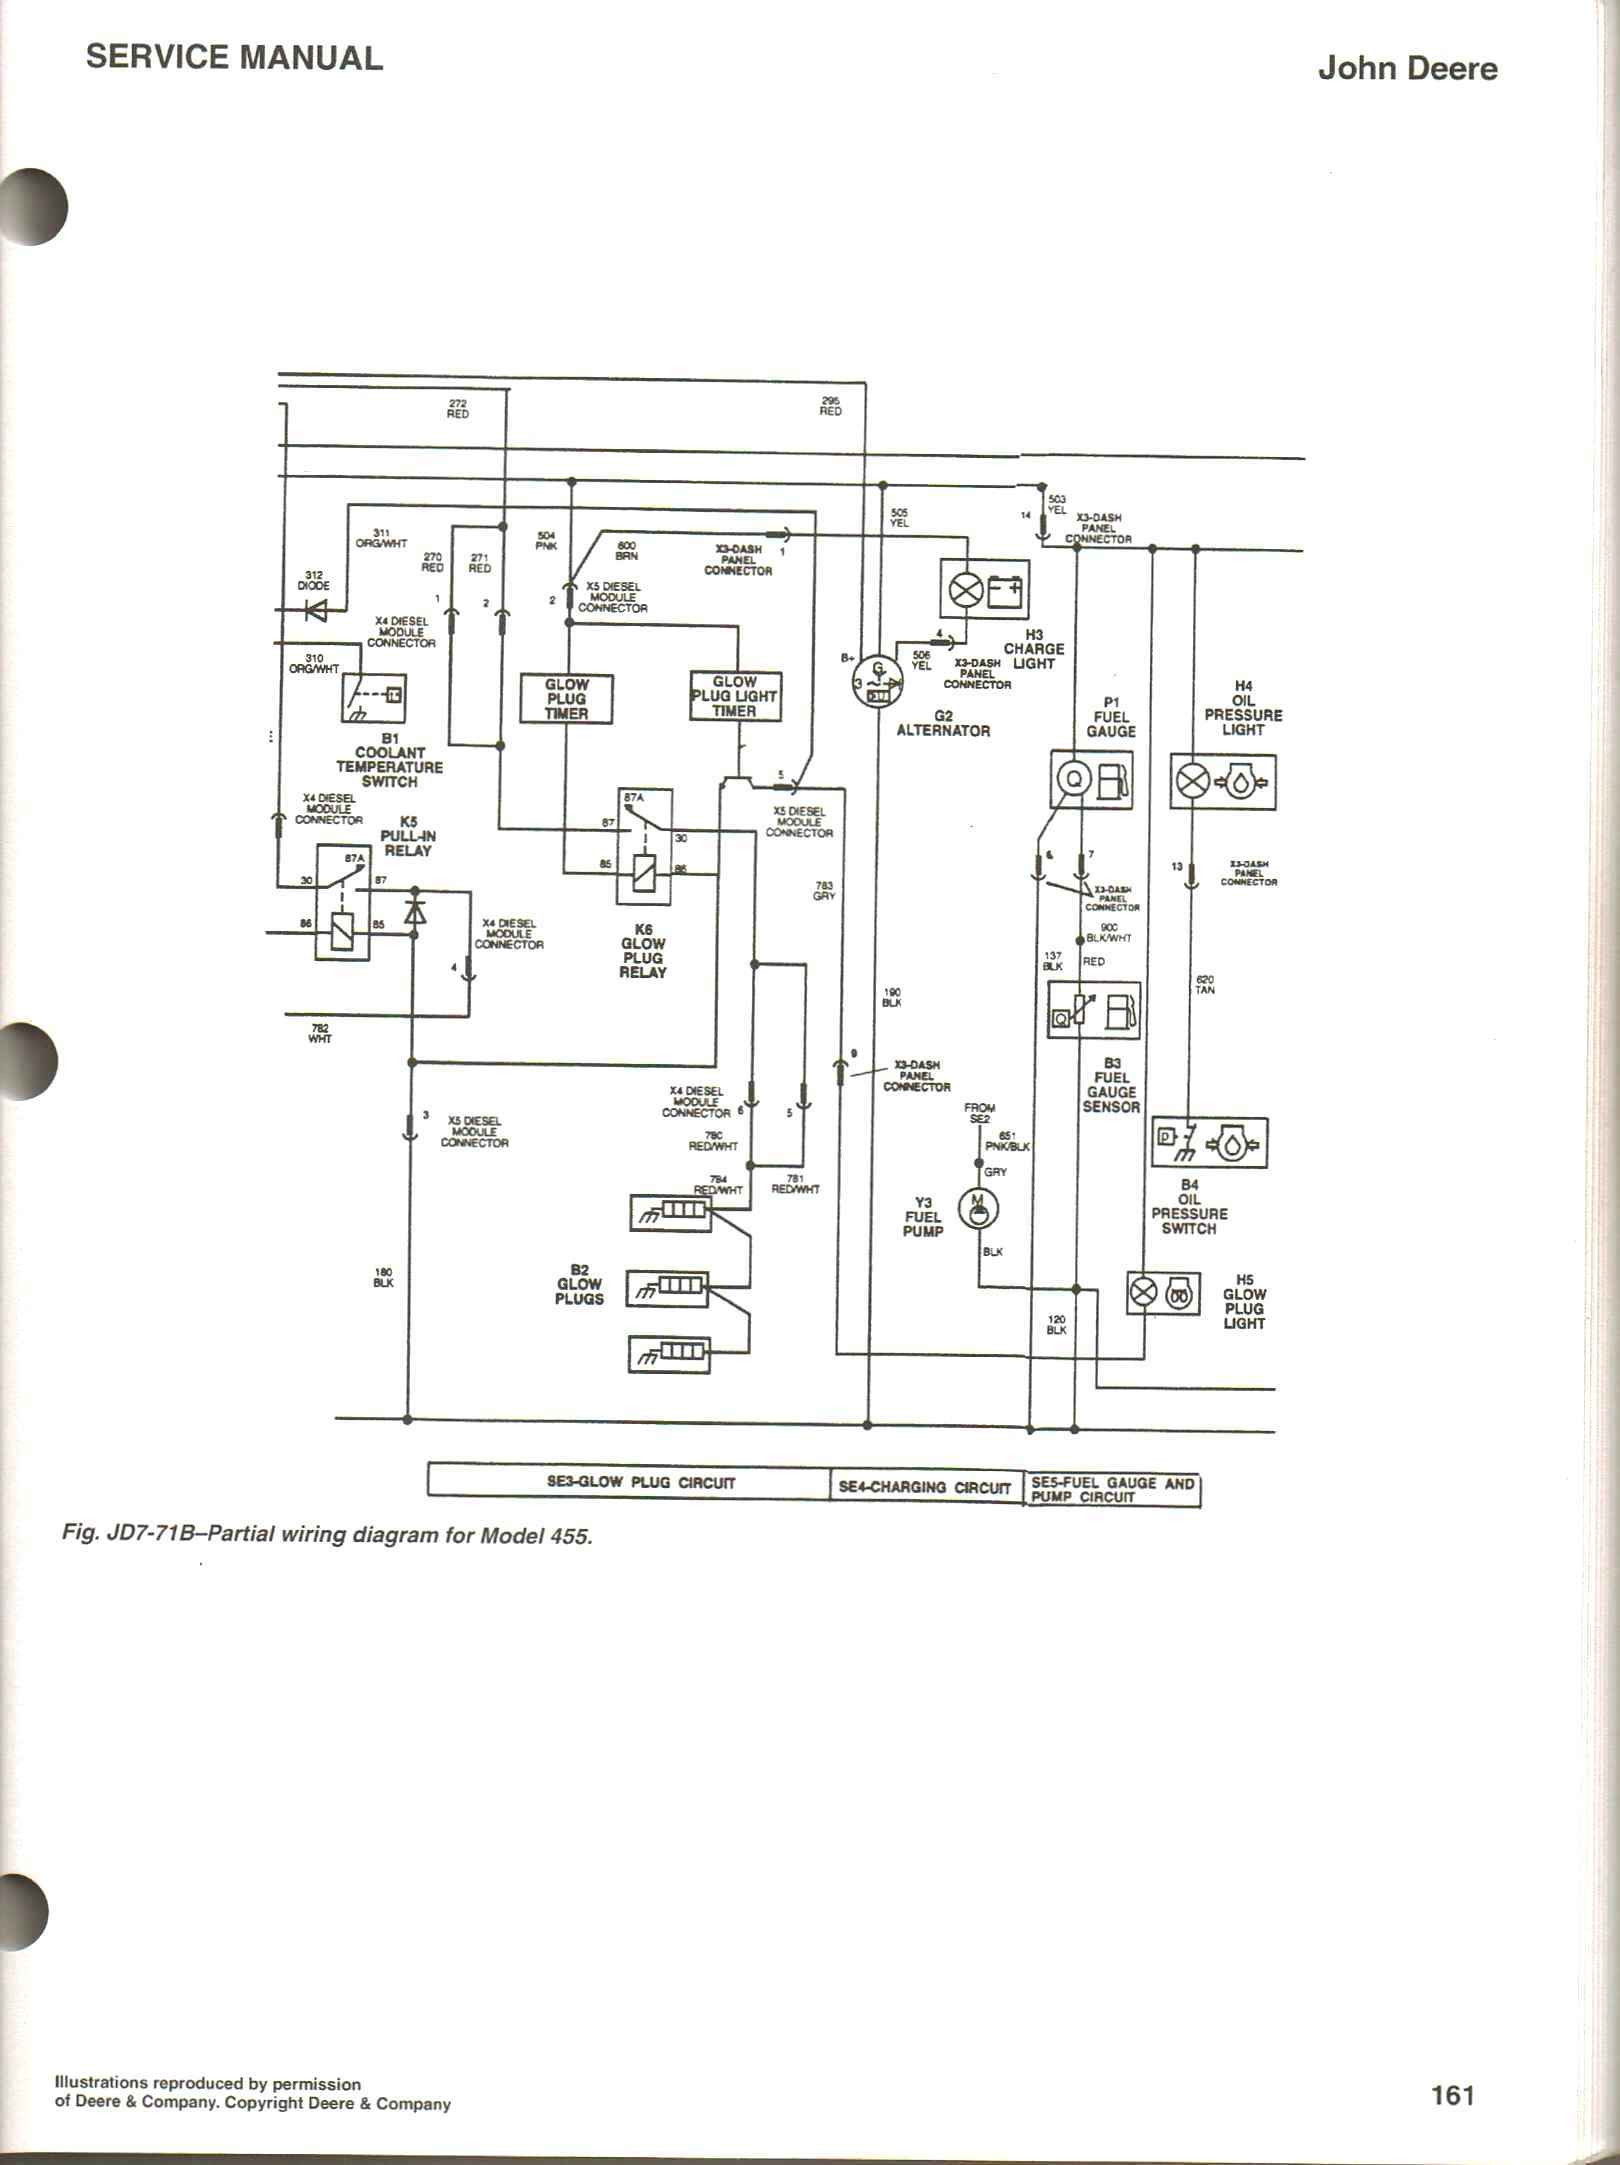 john deere gator 6x4 wiring diagram Download-Wiring Diagram for John Deere Gator 6x4 Save Ausgezeichnet Gator 6x4 Dieseldiagramm Fotos Schaltplan Serie 5-r